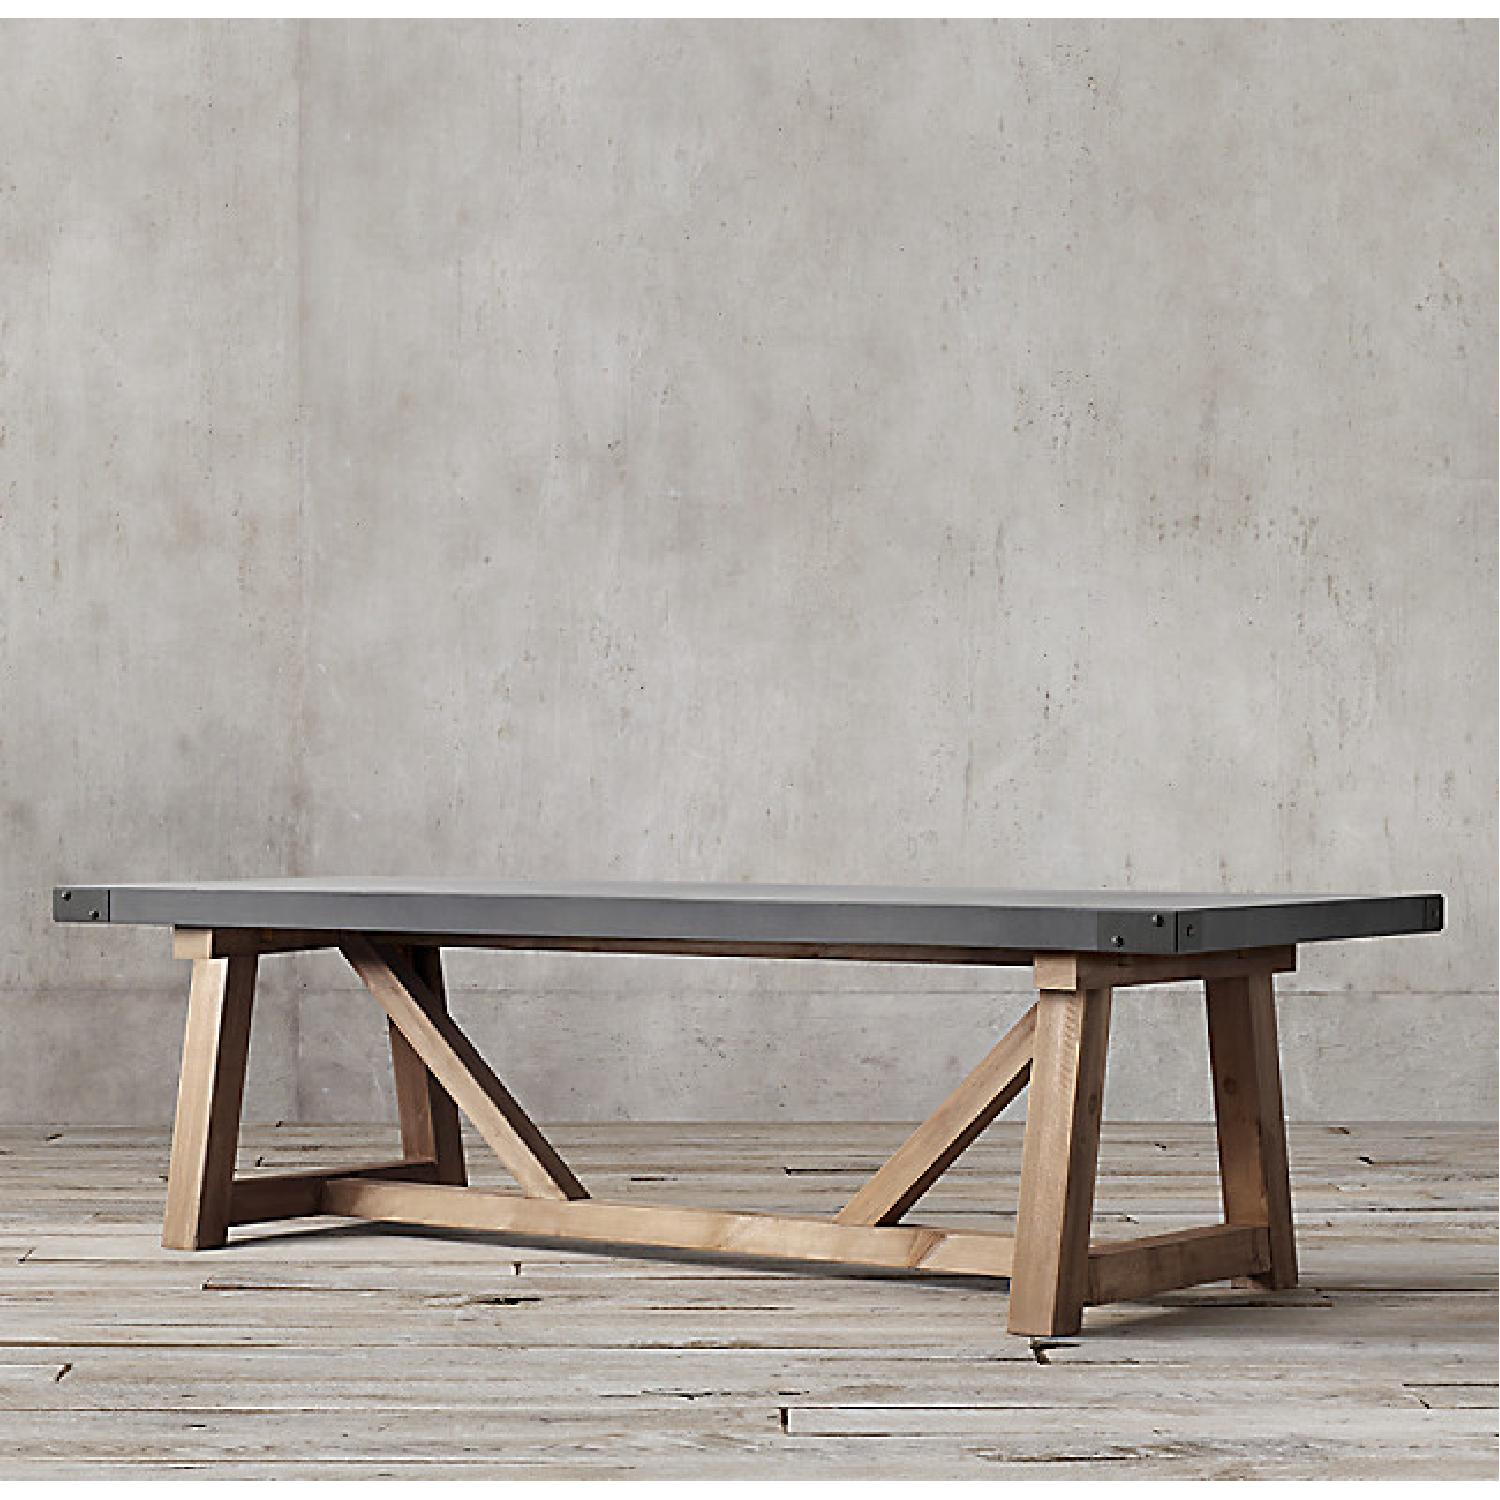 Restoration Hardware Salvaged Wood and Concrete Table - image-9